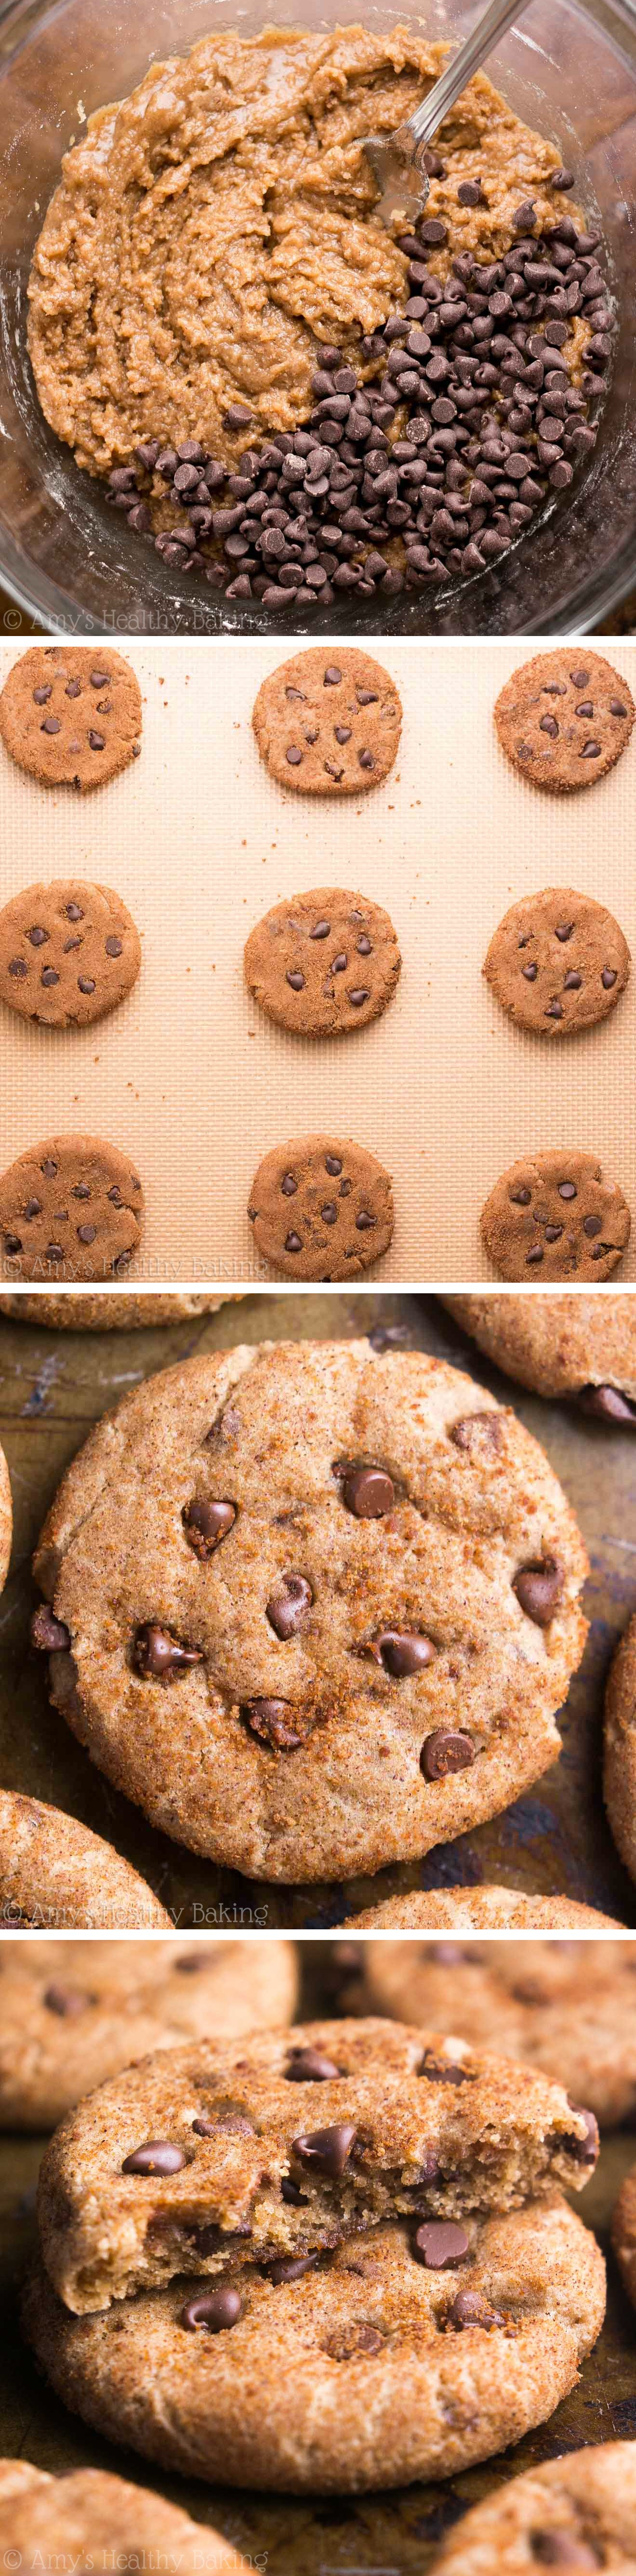 Skinny Chocolate Chip Snickerdoodles -- the perfect combo of cookie flavors! Made with NO refined flour or sugar, but they don't taste healthy at all!